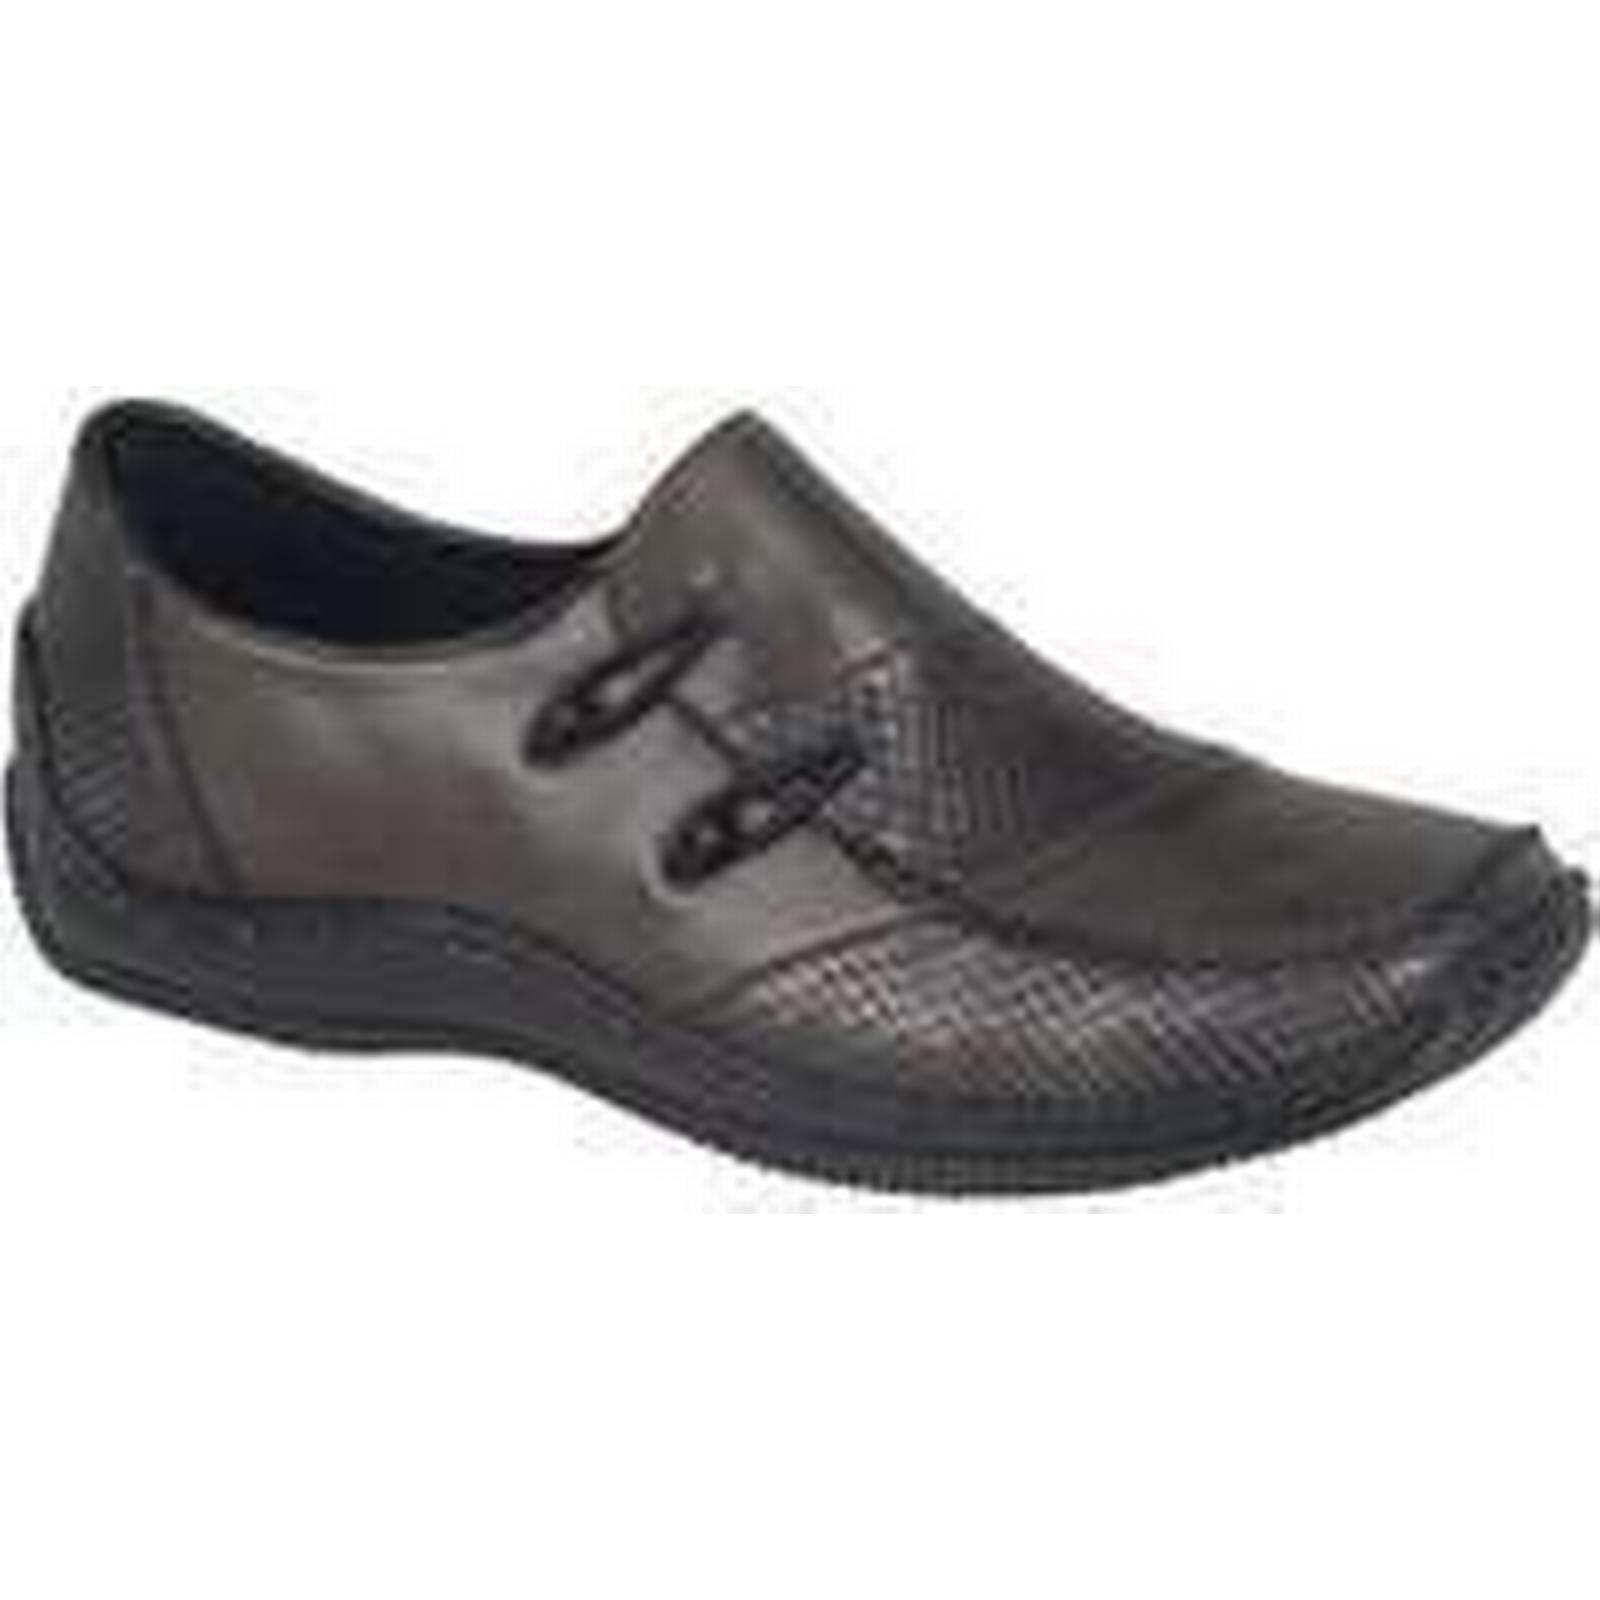 Spartoo.co.uk Rieker Cassie Womens Casual Shoes women's in Loafers / Casual Shoes in women's Grey 5a93bf